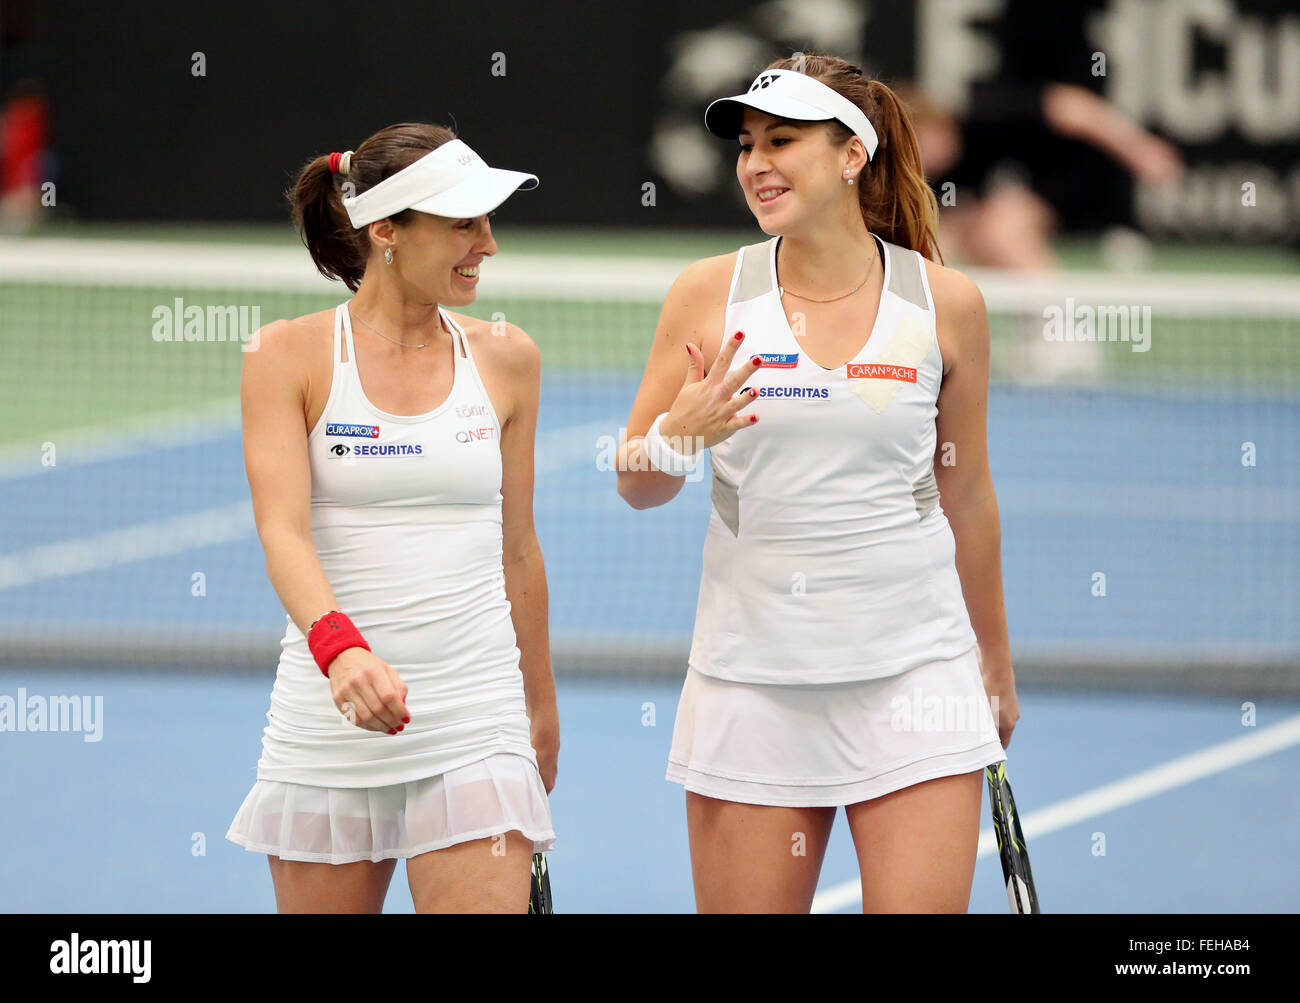 Leipzig, Germany. 07th Feb, 2016. Martina Hingis (L) and Belinda Bencic of Switzerland talk during their match against - Stock Image